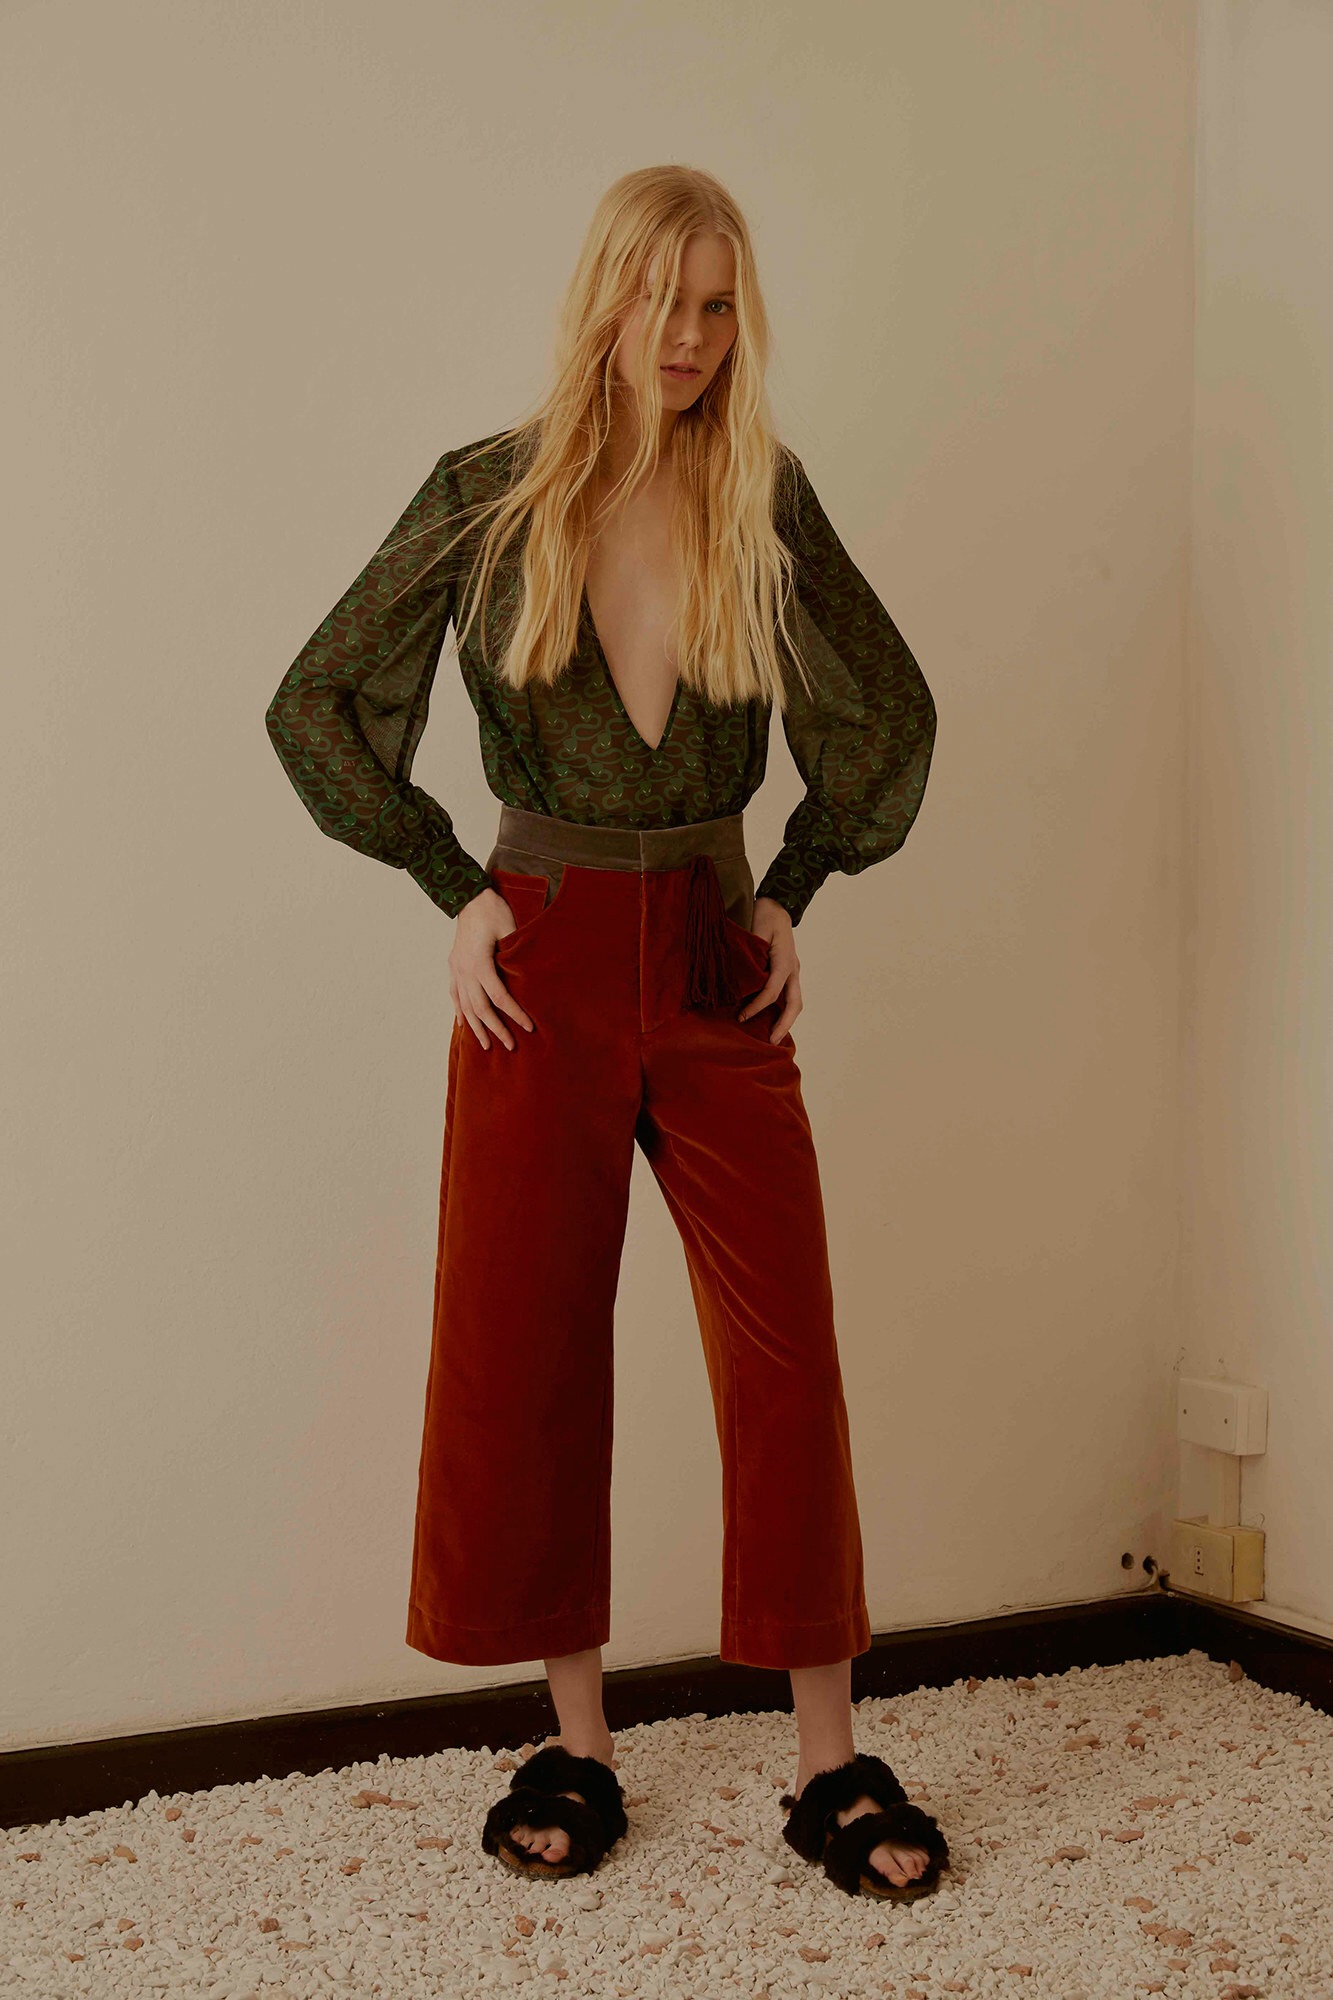 images/cast/20162000010000010=Pre Fall 2016 COLOUR'S COMPANY fabrics x=Au Jour Le Jour